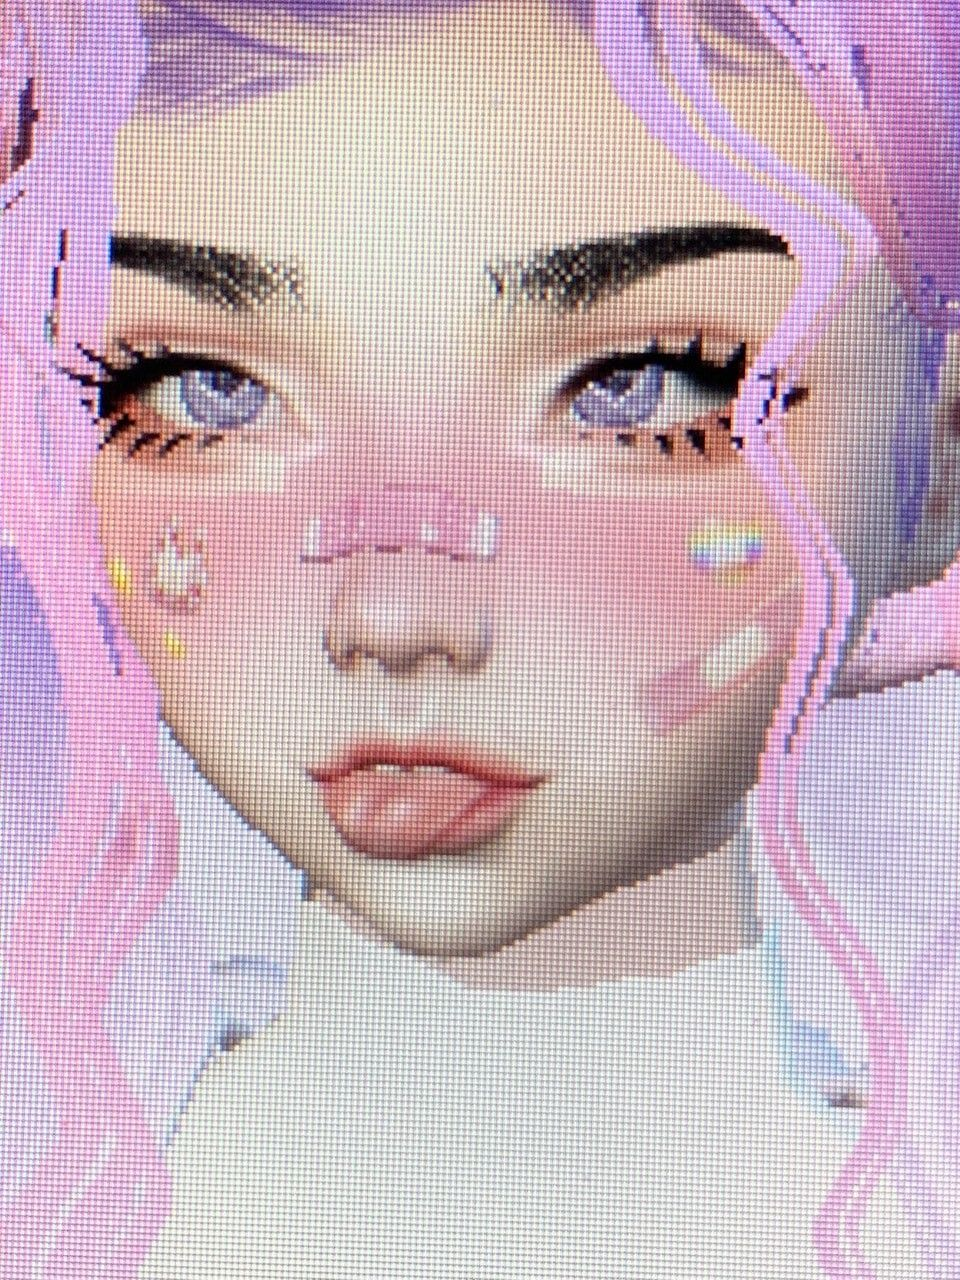 𝚙𝚒𝚗𝚝𝚎𝚛𝚎𝚜𝚝 ┊milkipede ༉‧₊˚ Aesthetic anime, Pastel